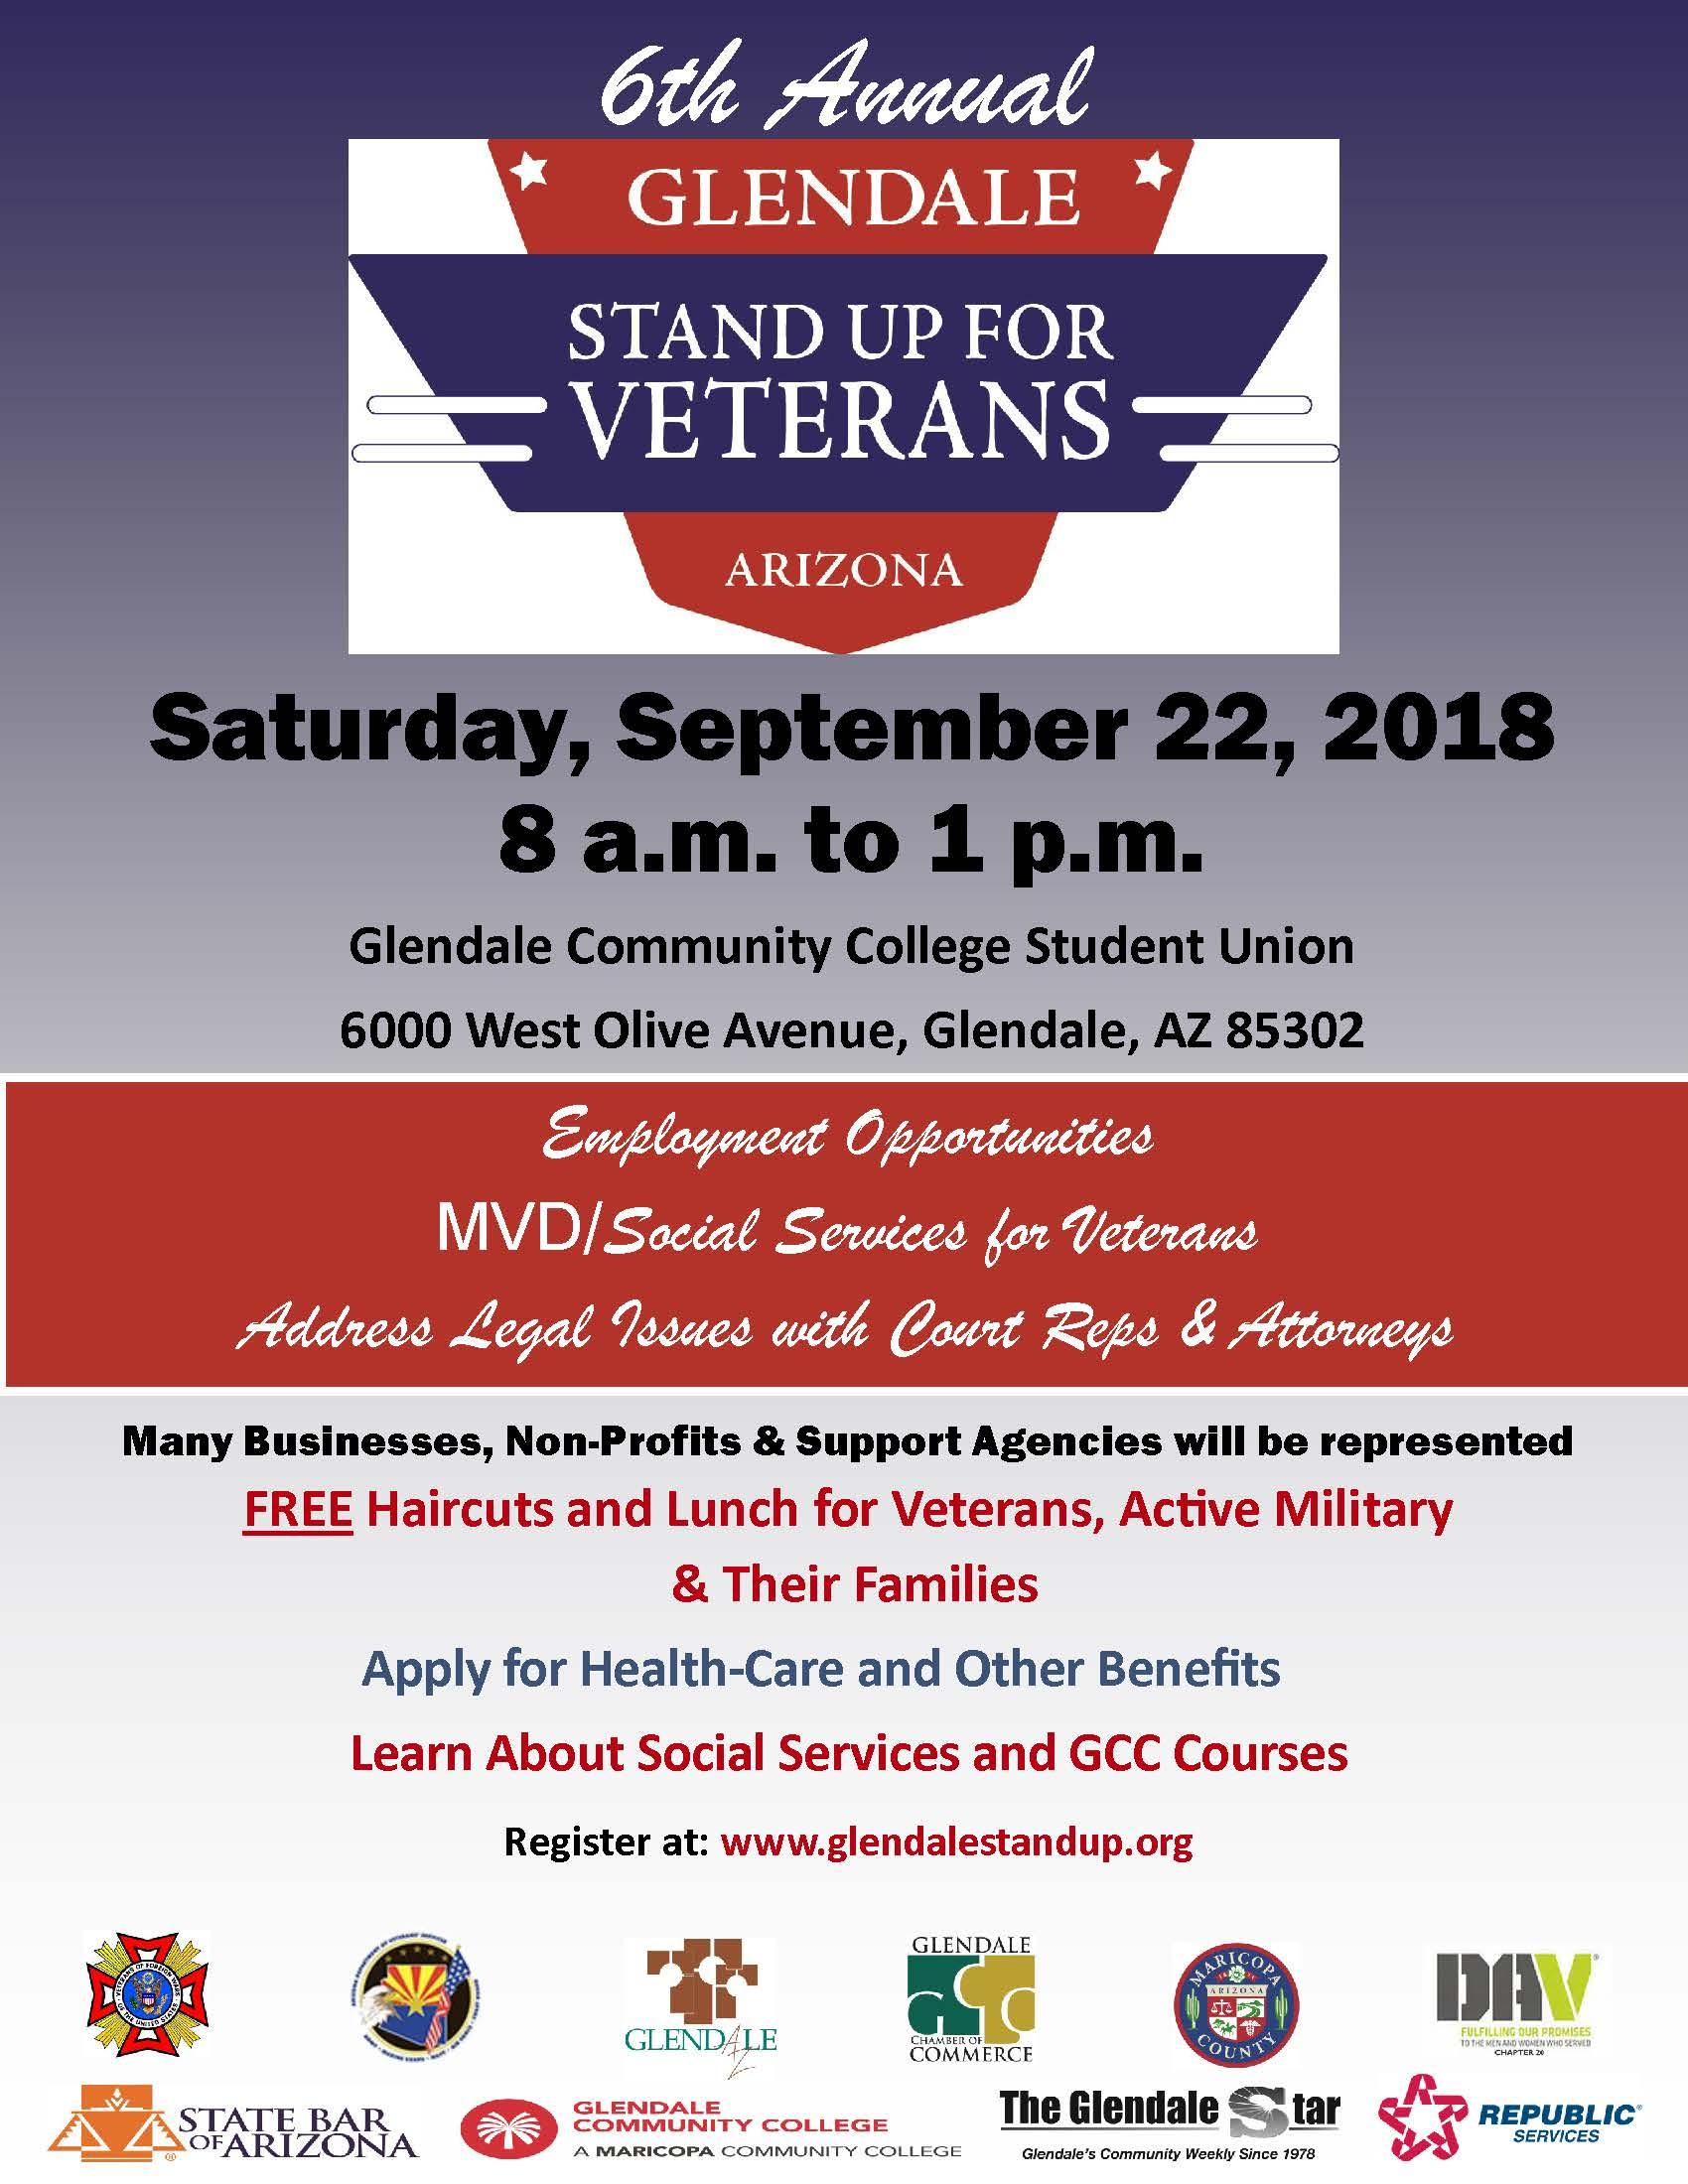 Glendale Stand Up for Veteran's Job Fair Flyer